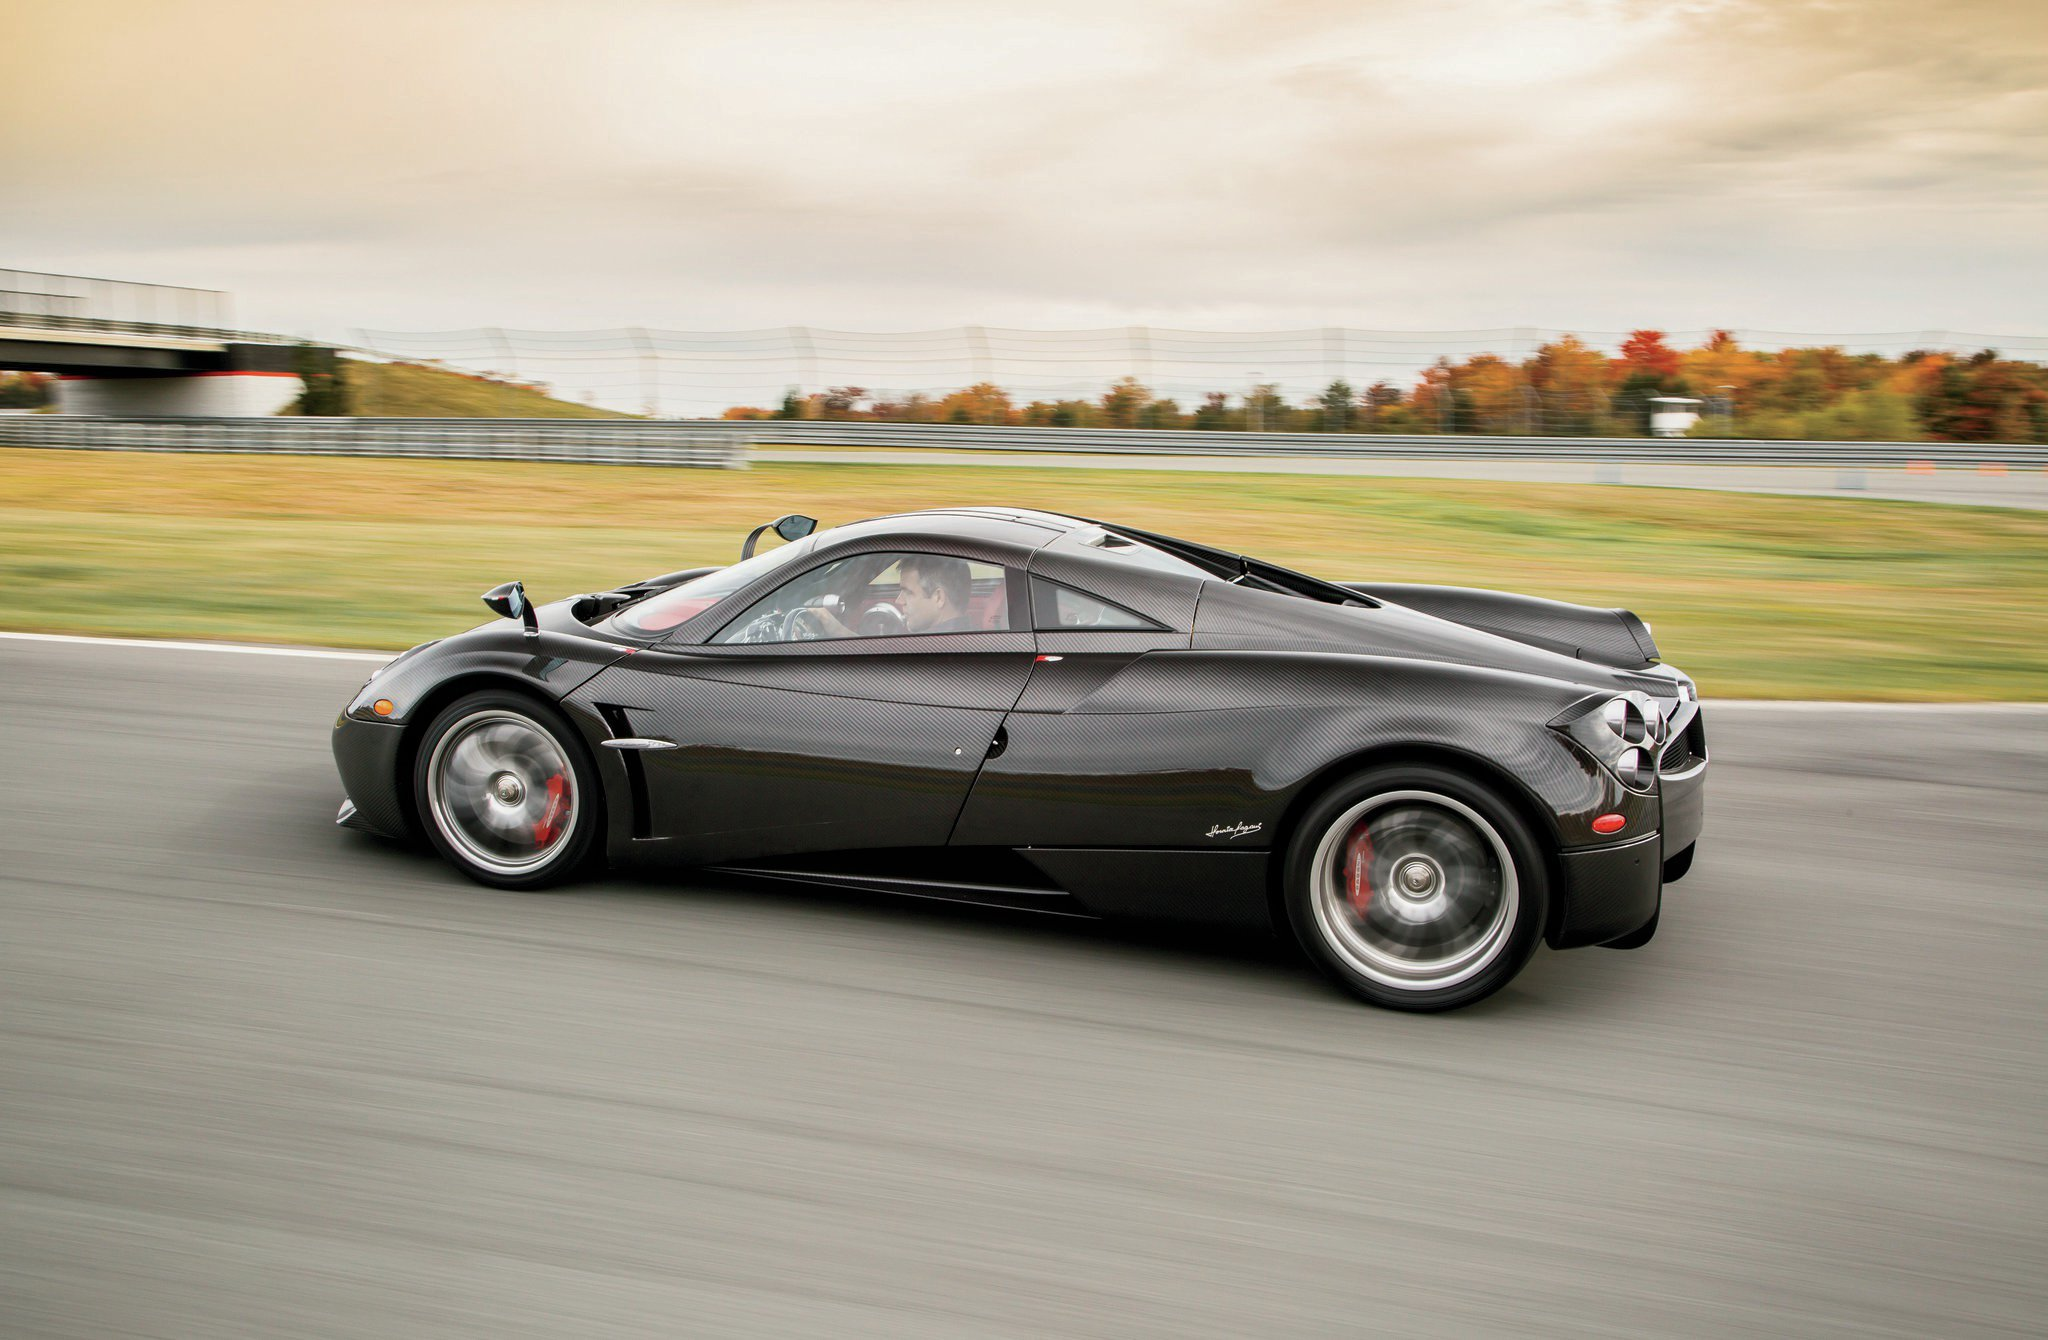 2015 Pagani Huayra Side Profile In Motion1